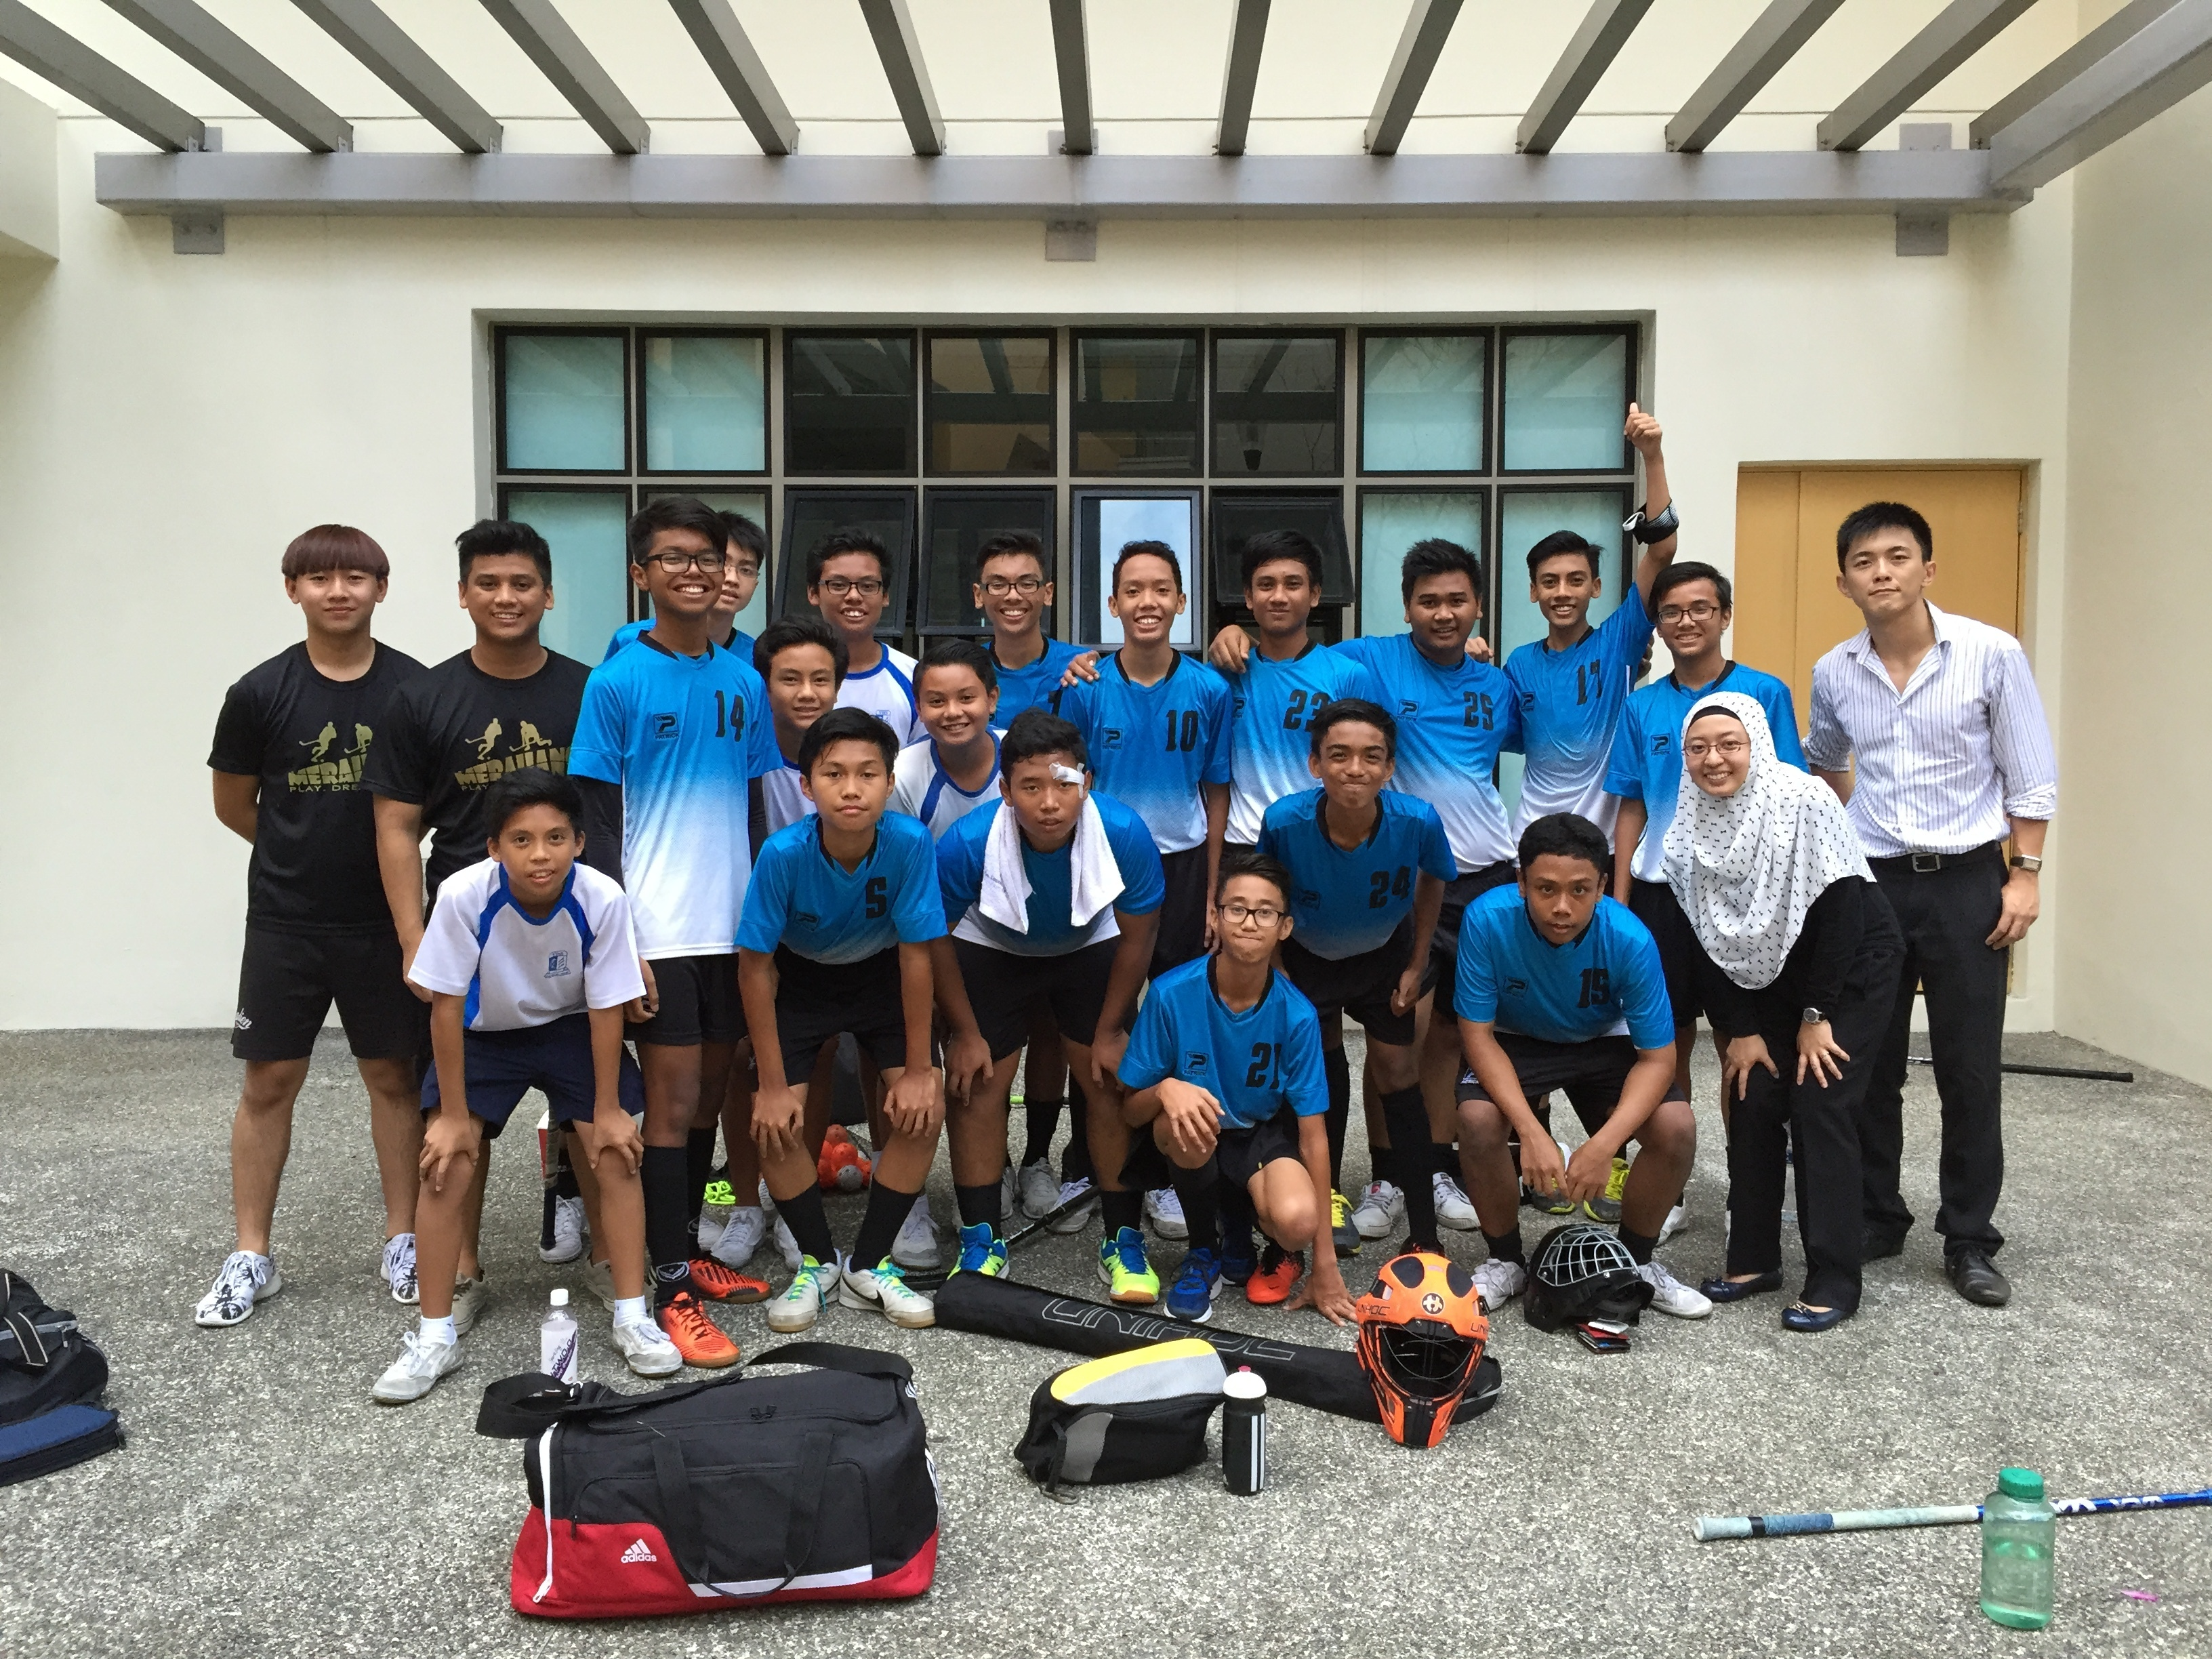 Floorball Team Group Photo 02